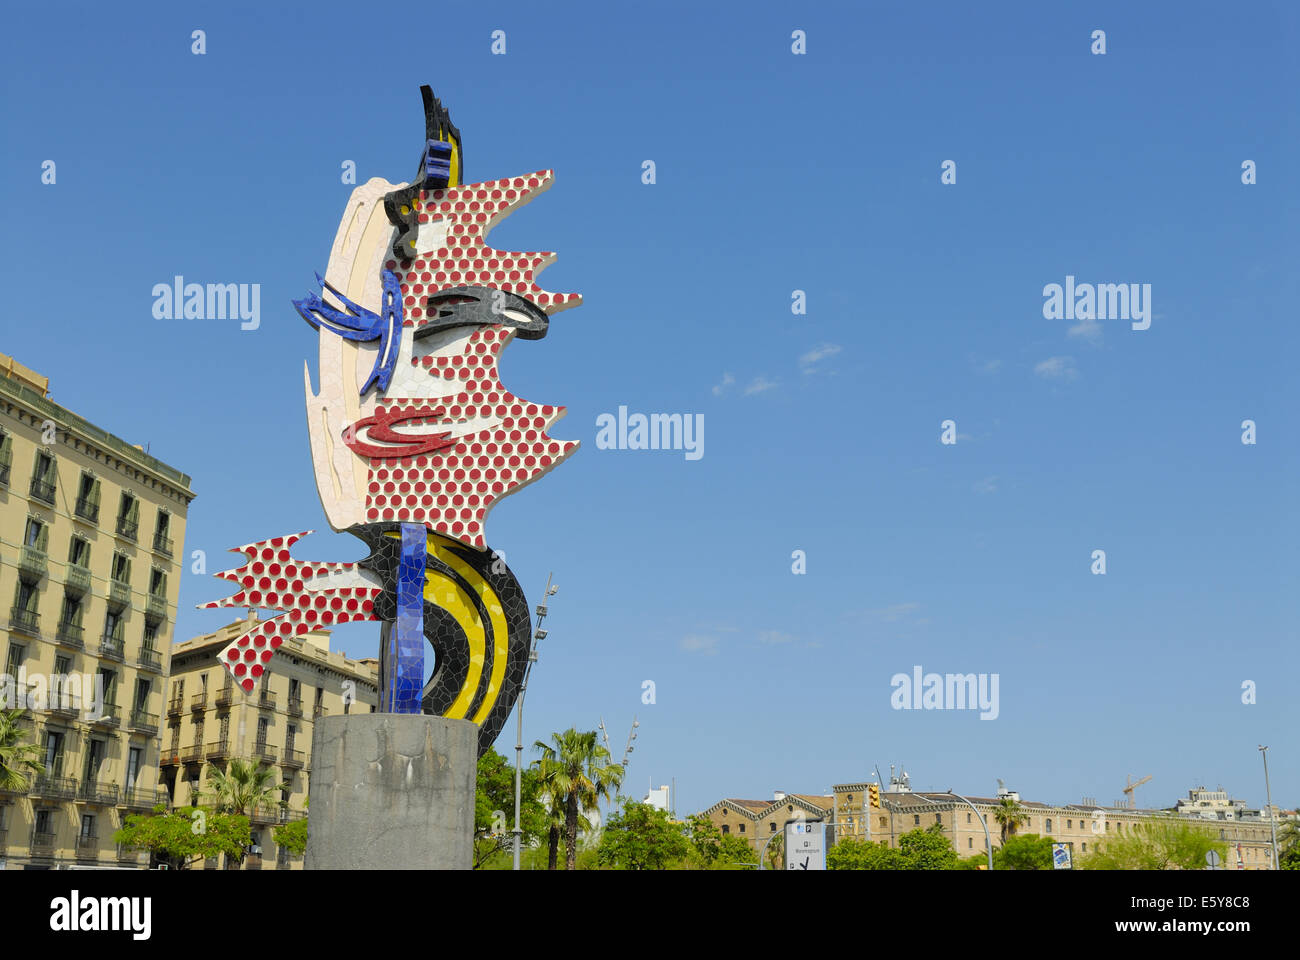 Joan Miro (Joan Miró) sculpture, Barcelona, Spain Stock Photo ...